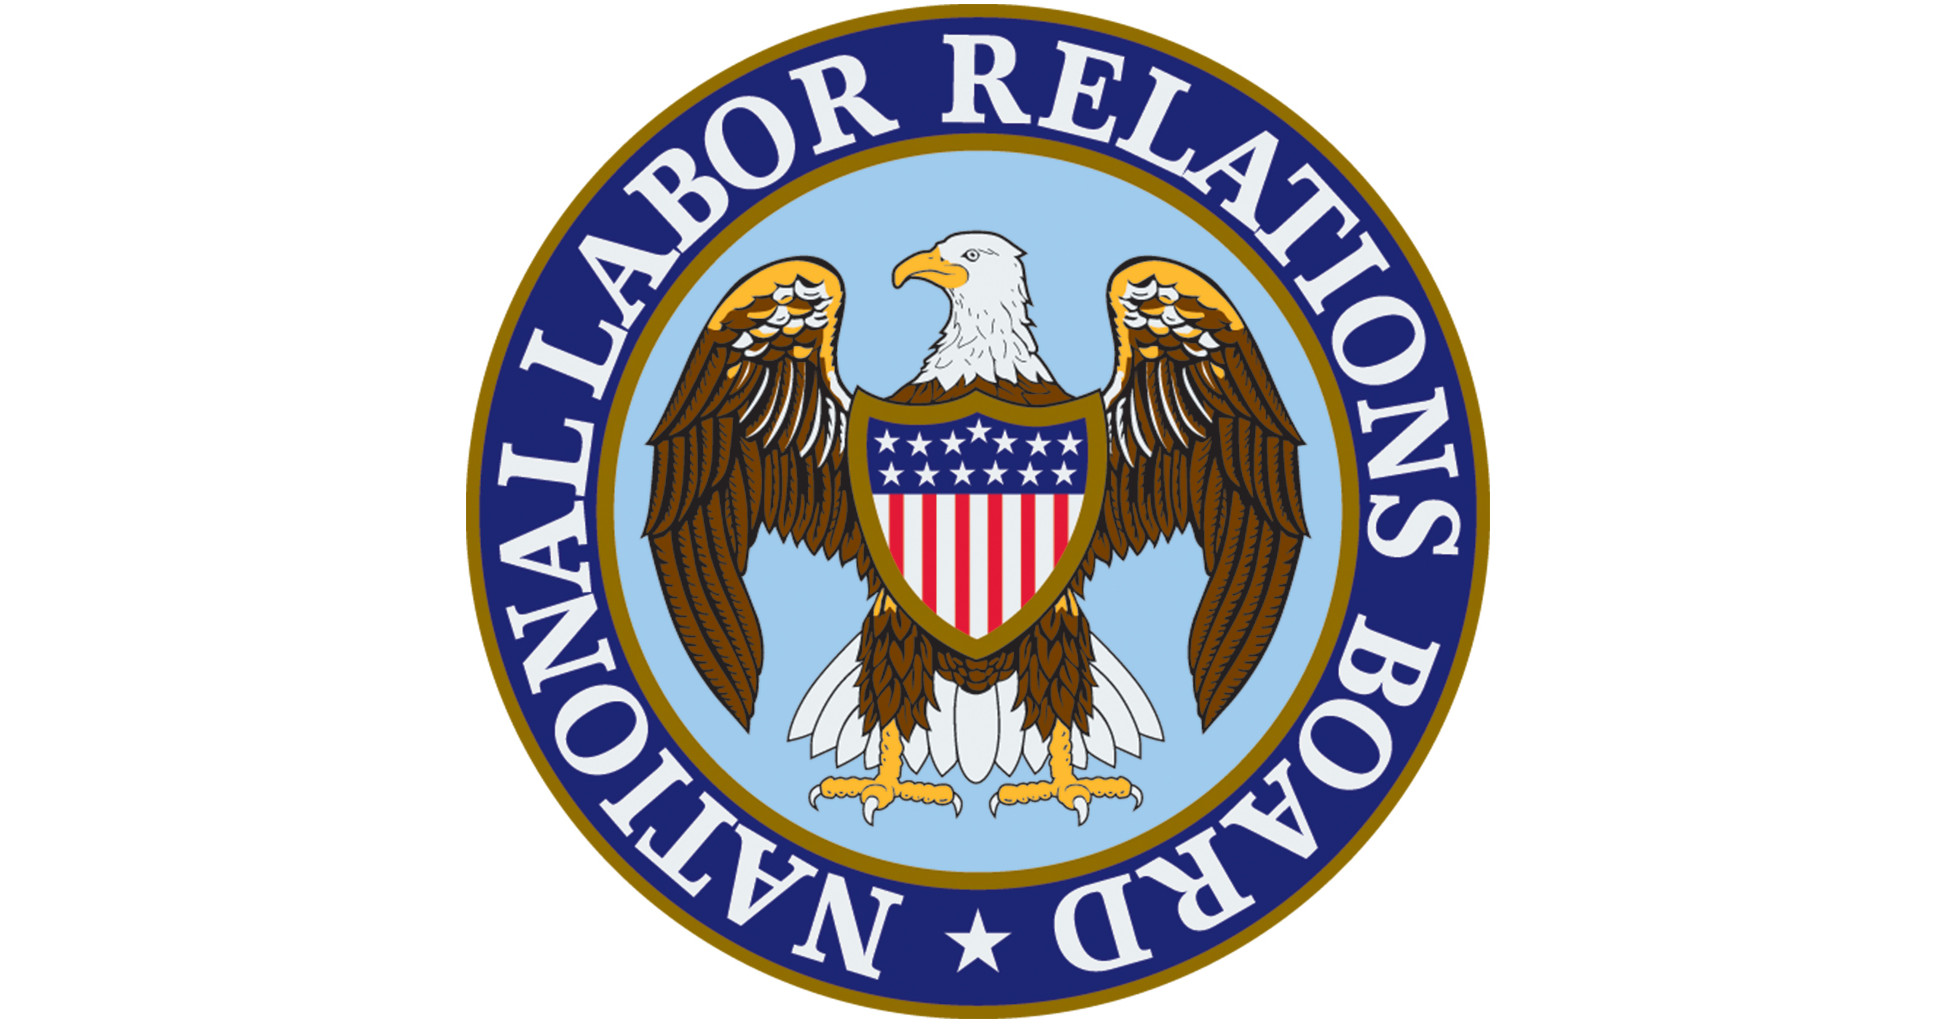 Trump National Labor Relations Board Protects Employee Freedom of Choice